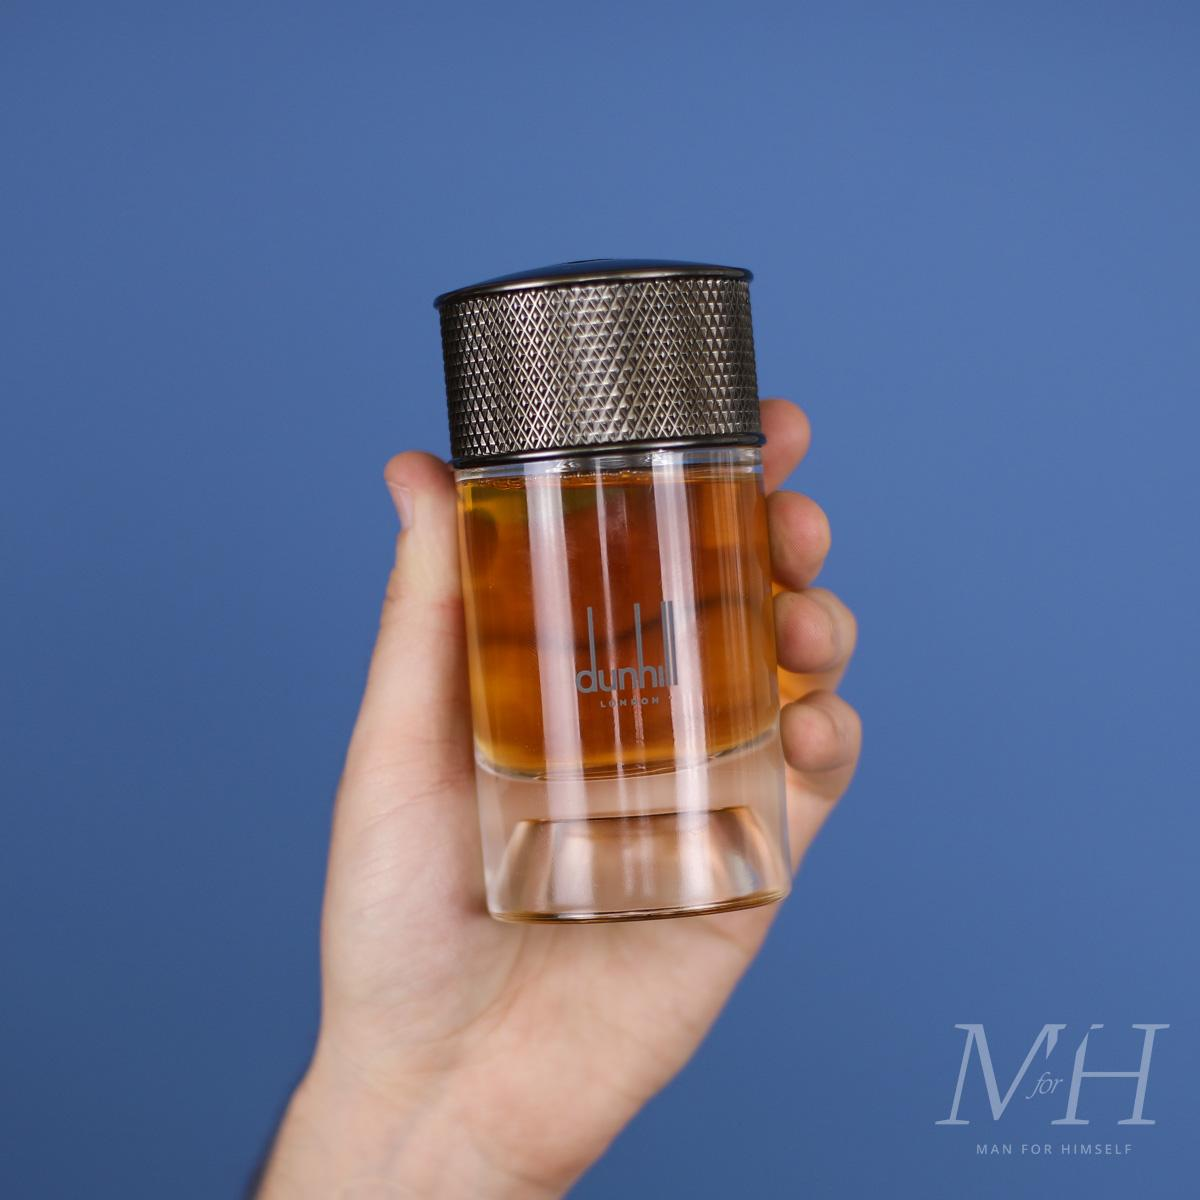 moroccan-amber-dunhill-product-review-man-for-himself